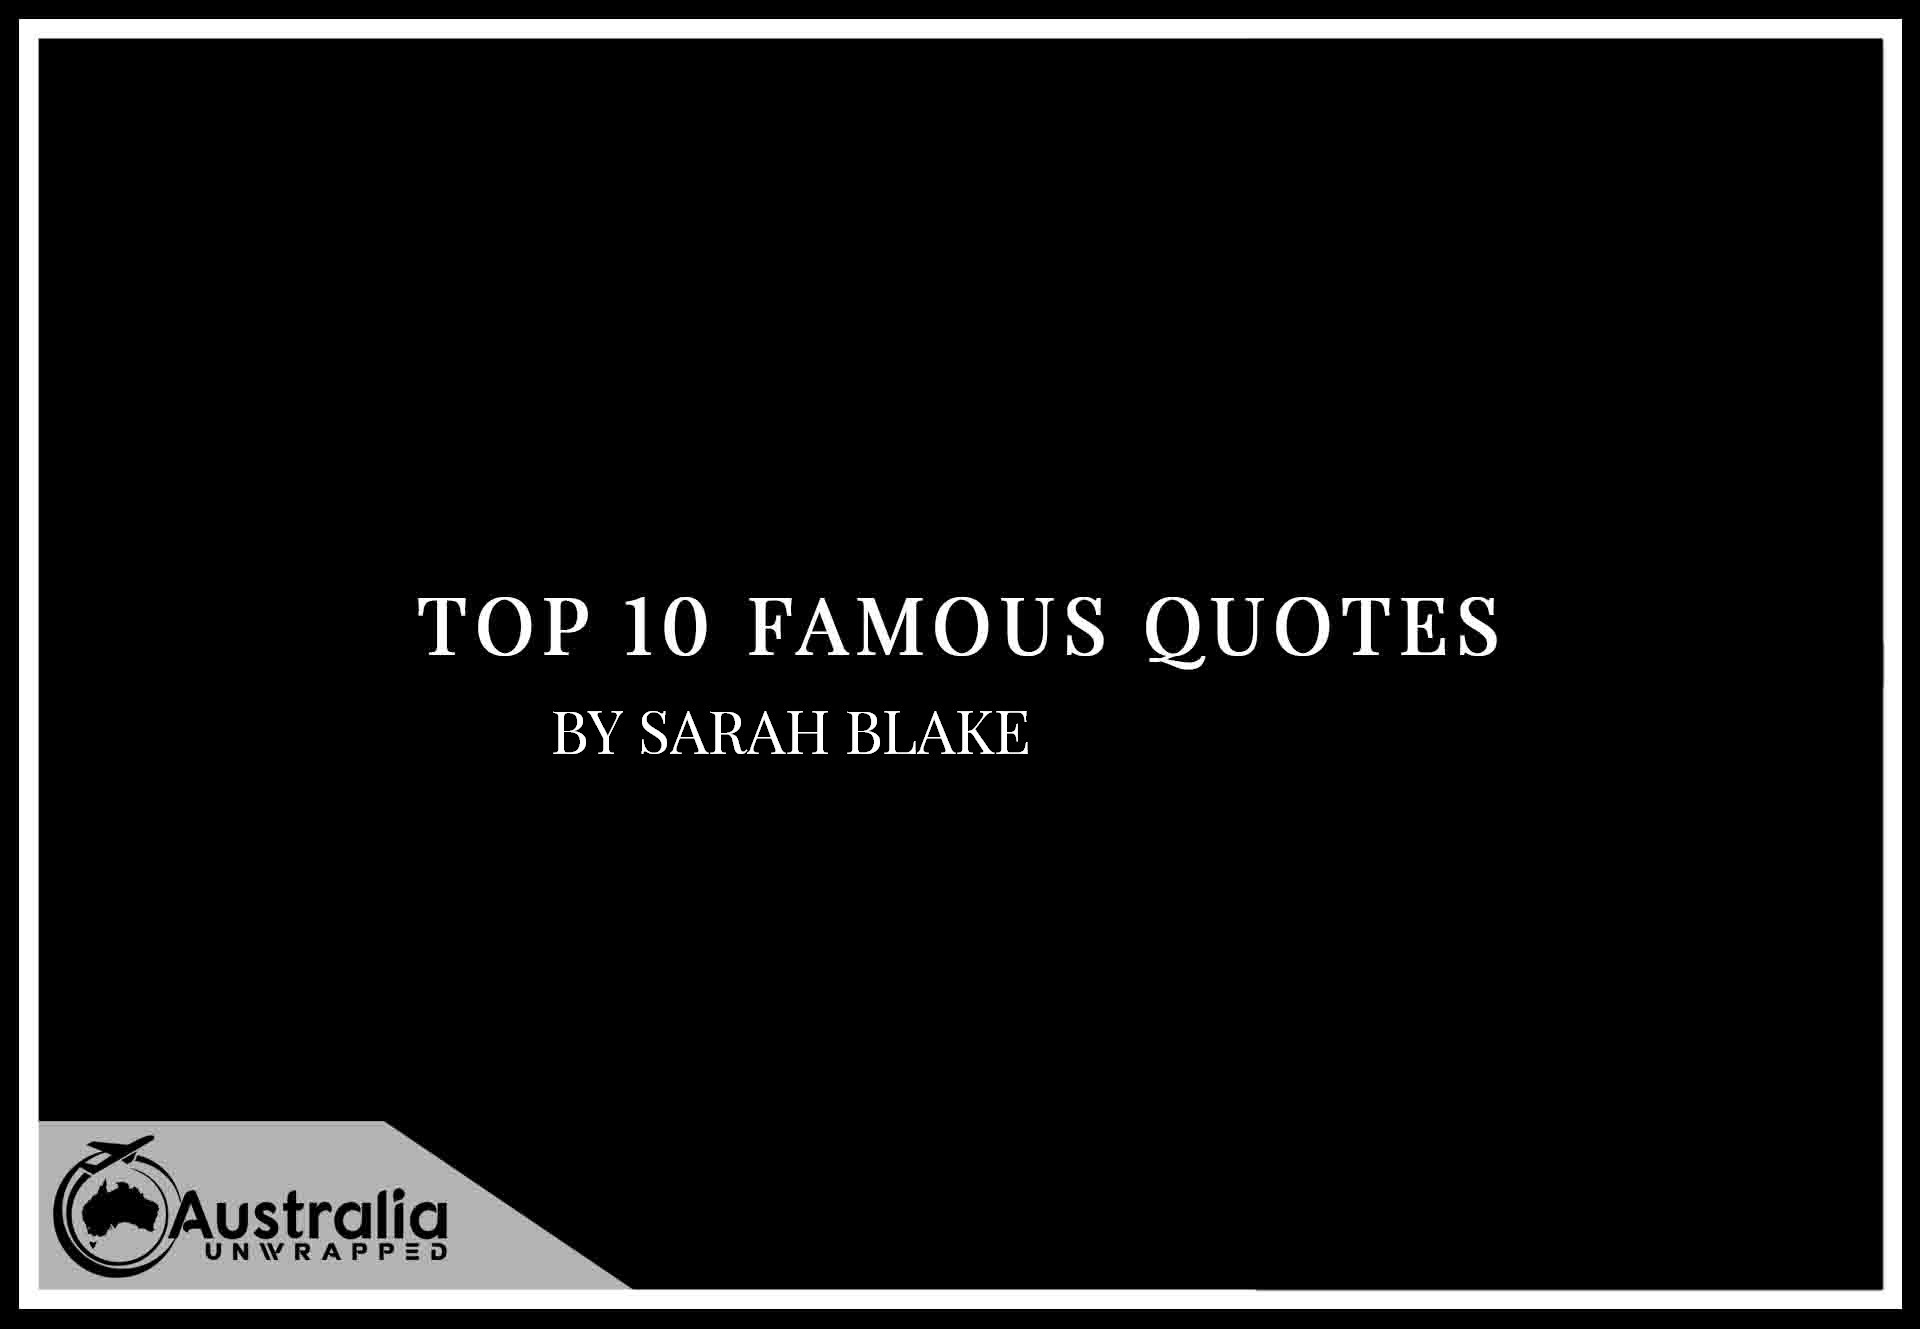 Top 10 Famous Quotes by Author Sarah Blake